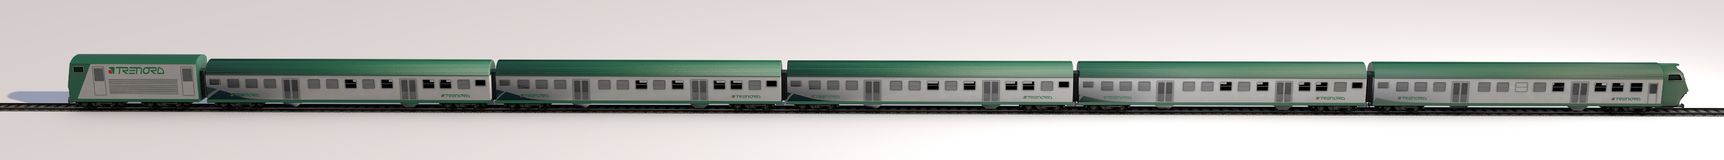 Side view of a train, railway convoy. Trenord. Milan. Italy. Side view of a train, railway convoy. Trenord Milan. Trenitalia, Fnm. Passenger transport, carriages Royalty Free Stock Photo